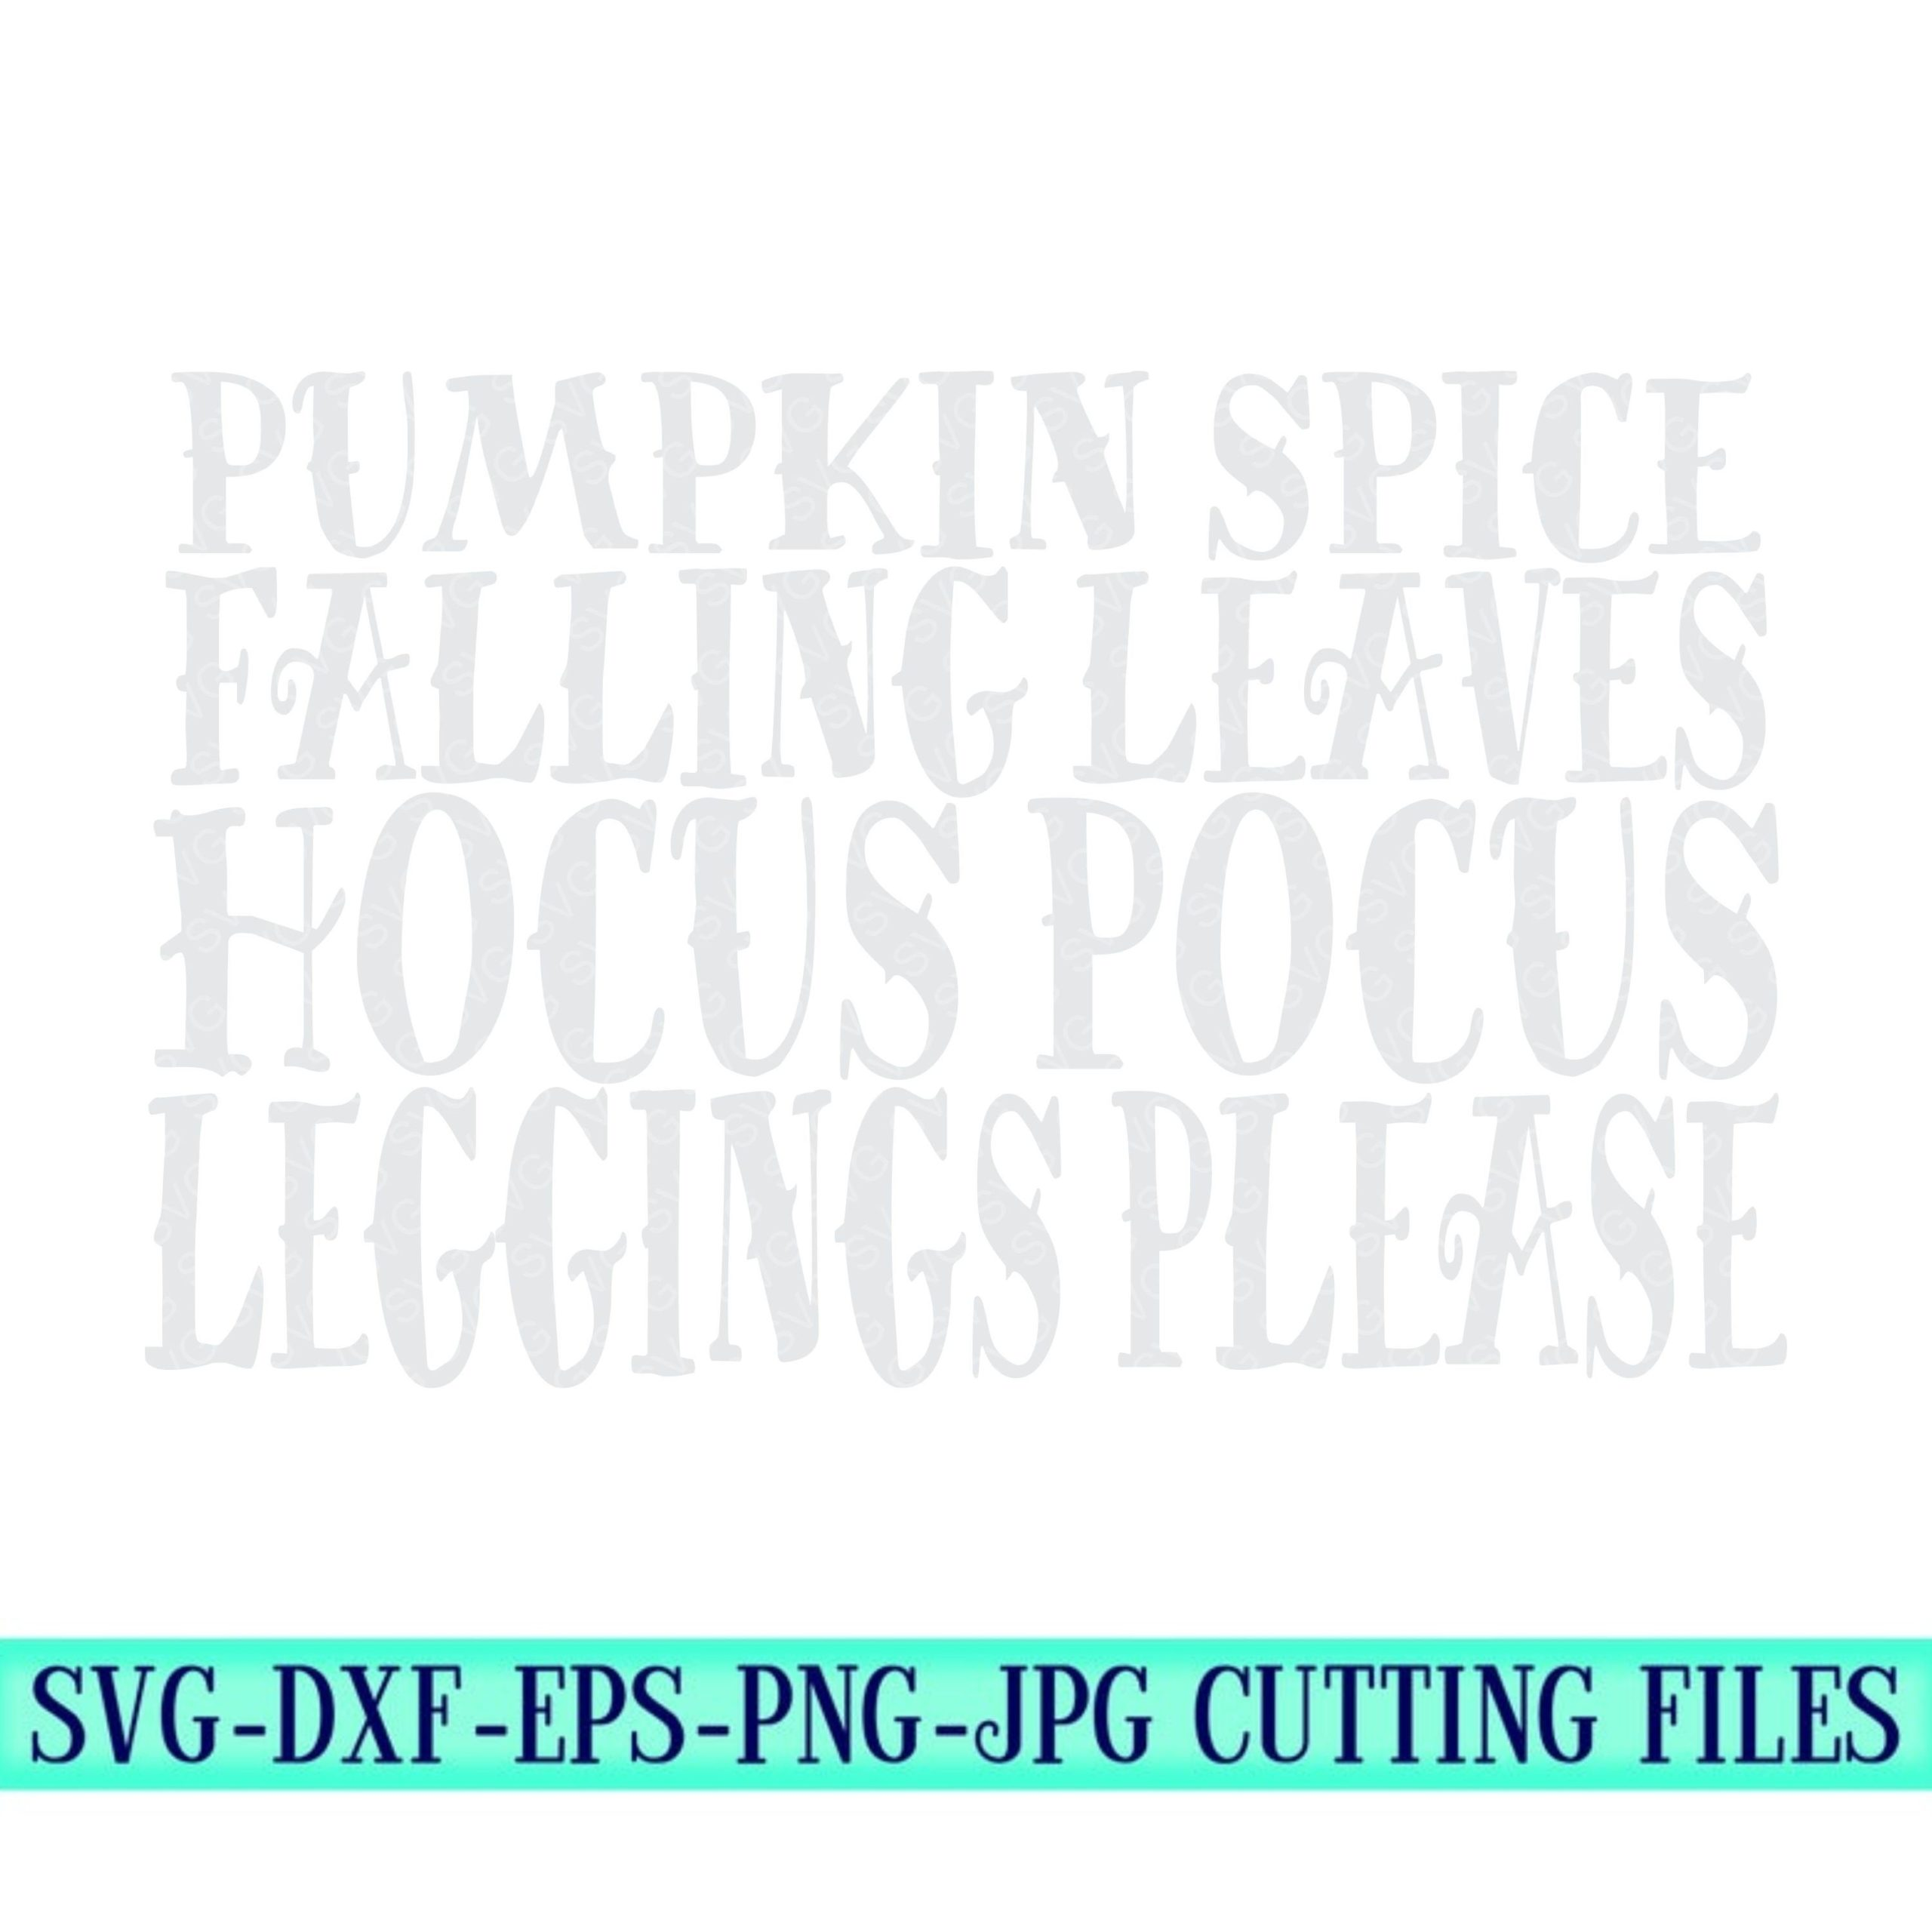 Pumpkin-spice-hocus-pocus-leggings-and-cozy-sweaters-svg-fall-quote-svg-halloween-svg-halloween-svg-designs-halloween-cut-files-cricut-files-5f6f7016